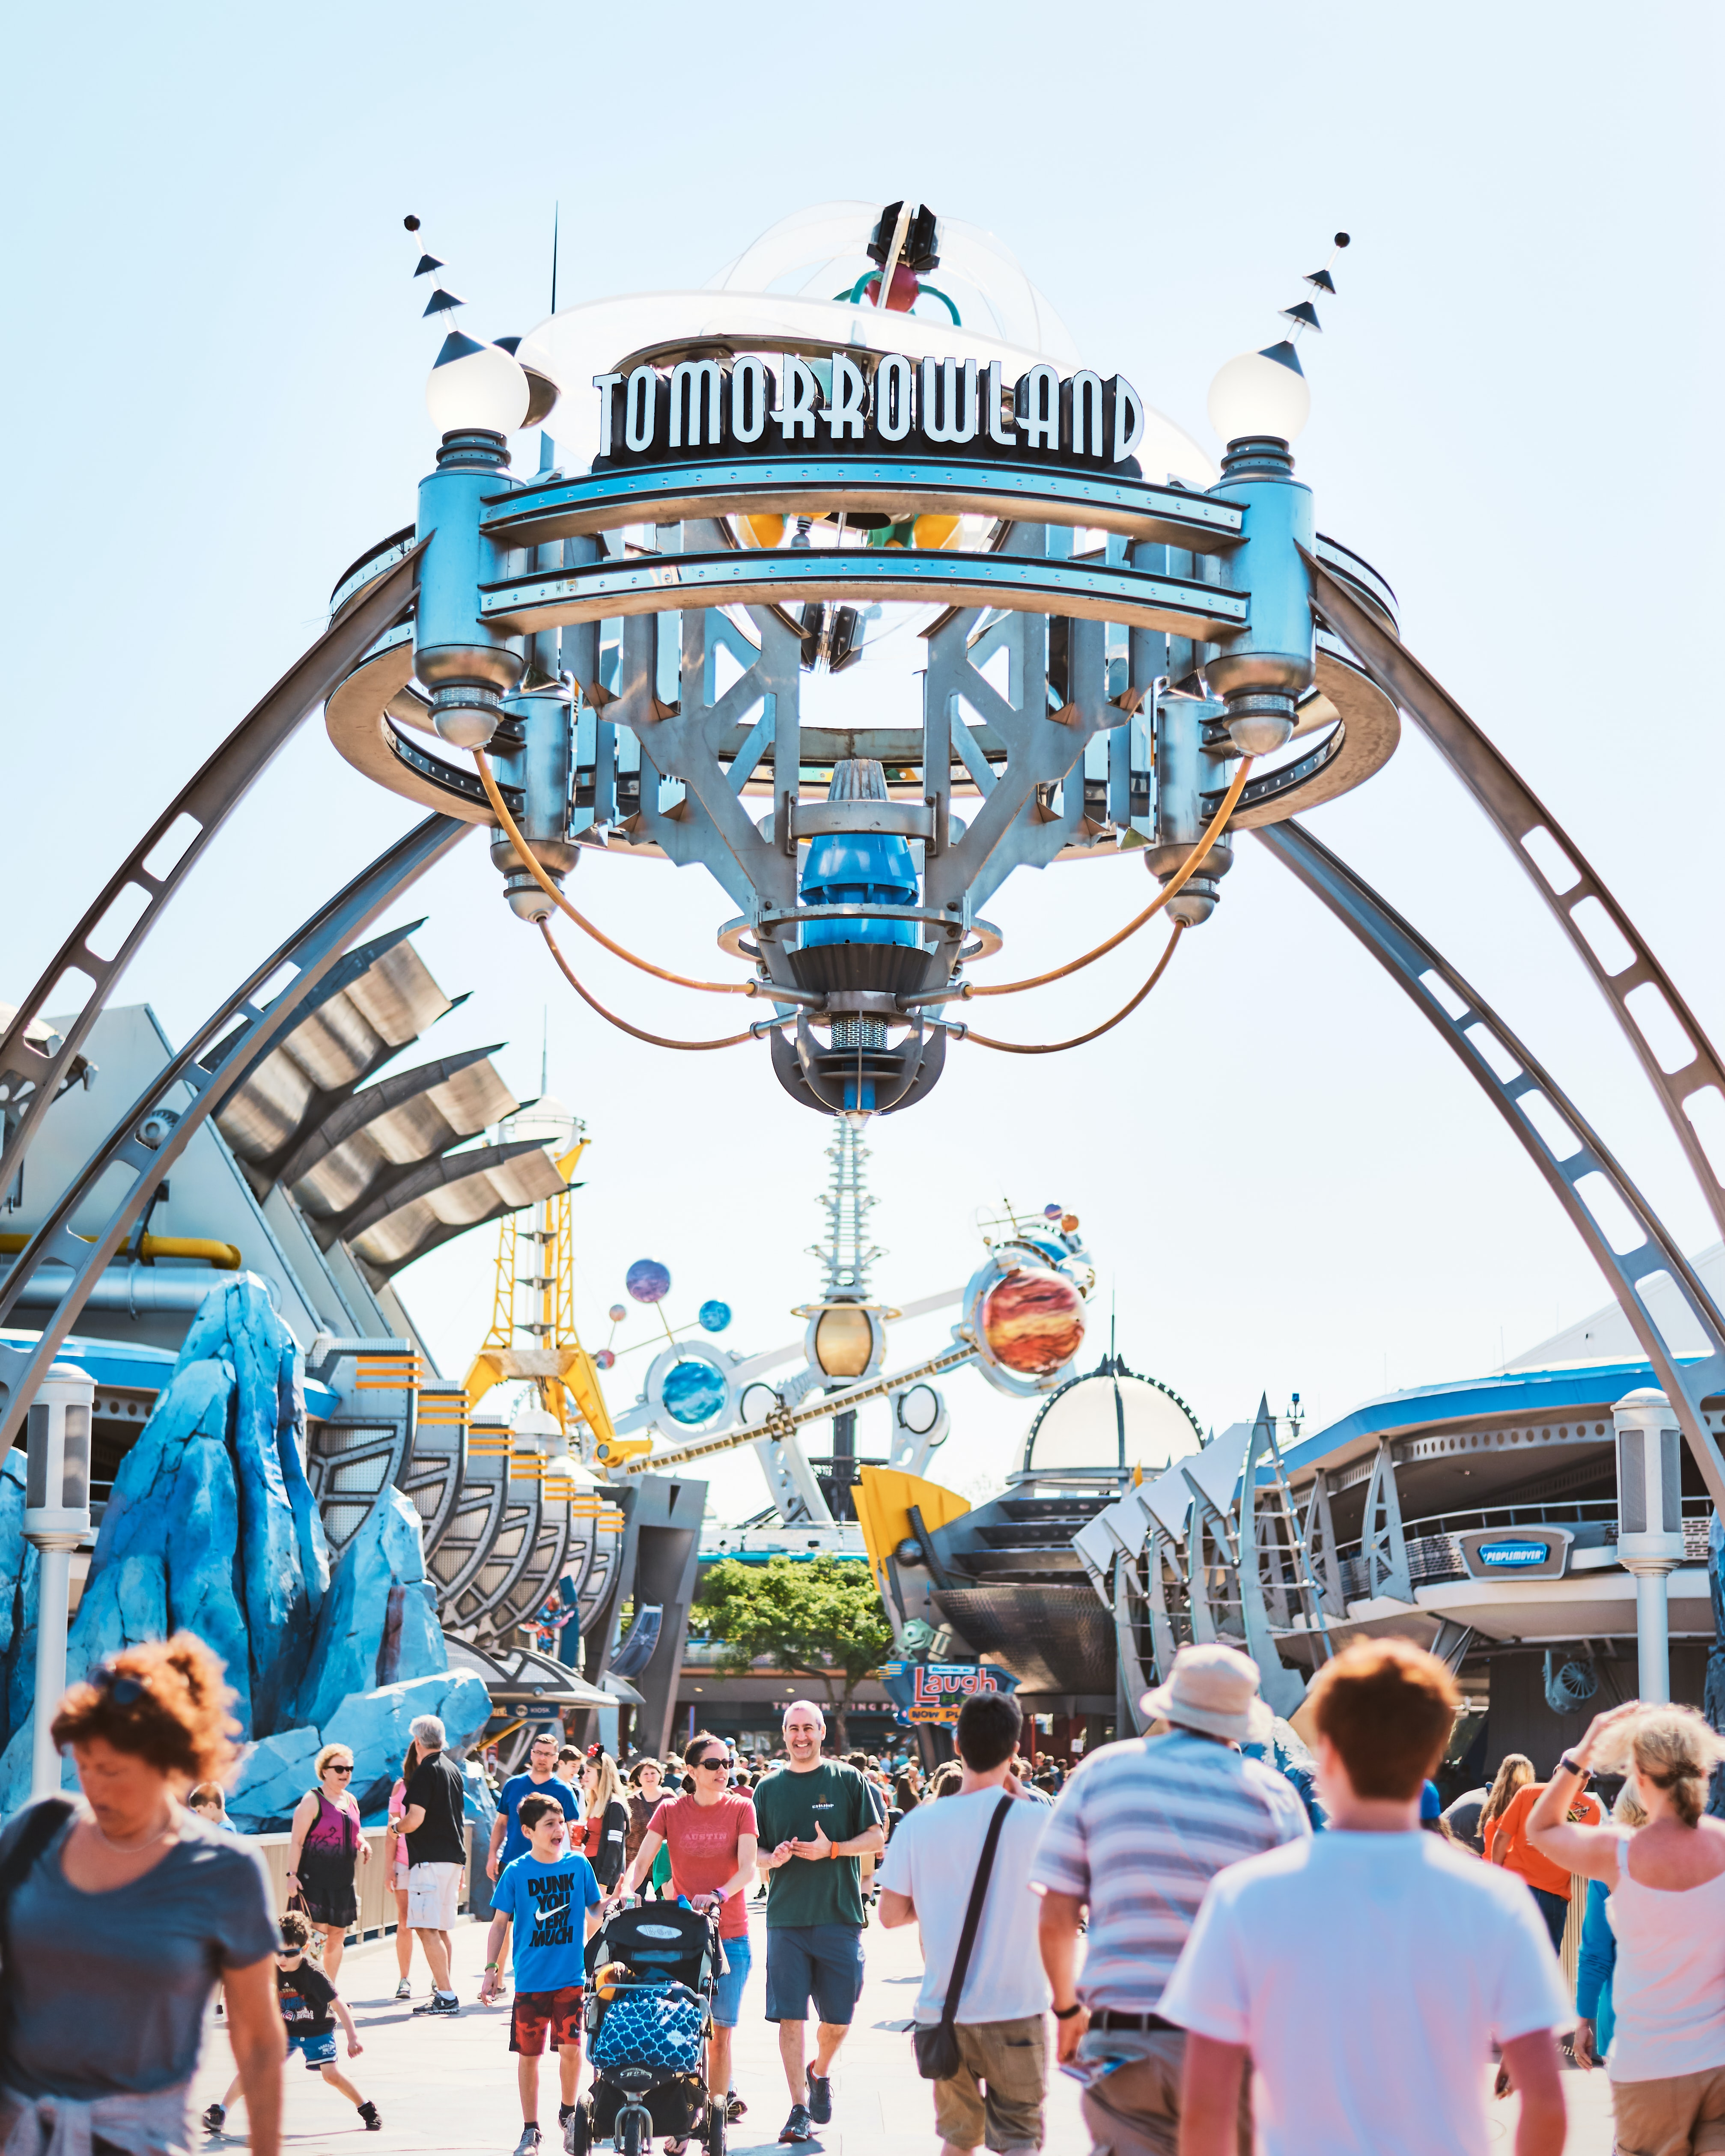 Tomorrowland Pictures Download Free Images On Unsplash